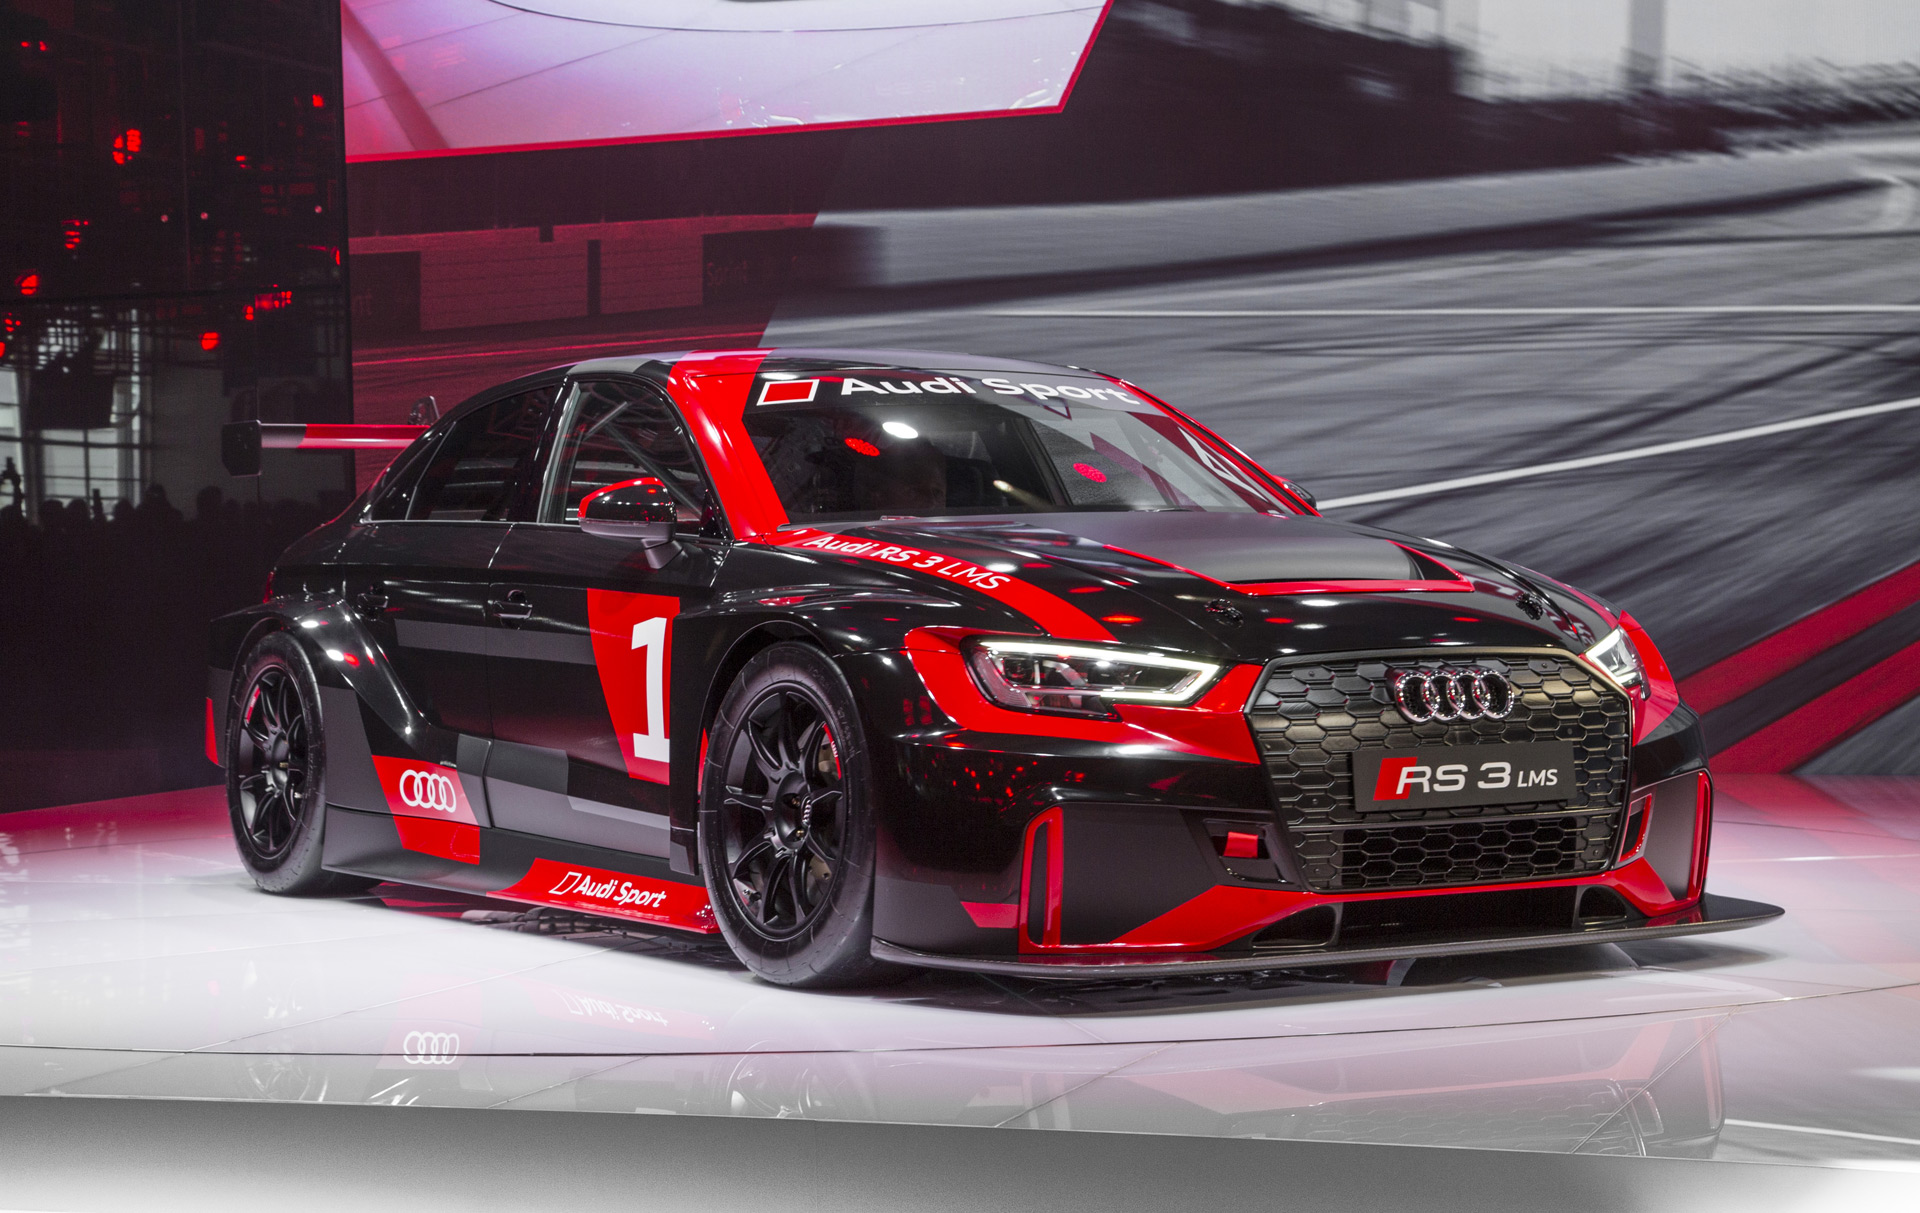 Chevy Suv Models >> 2017 Audi RS 3 LMS ready to race